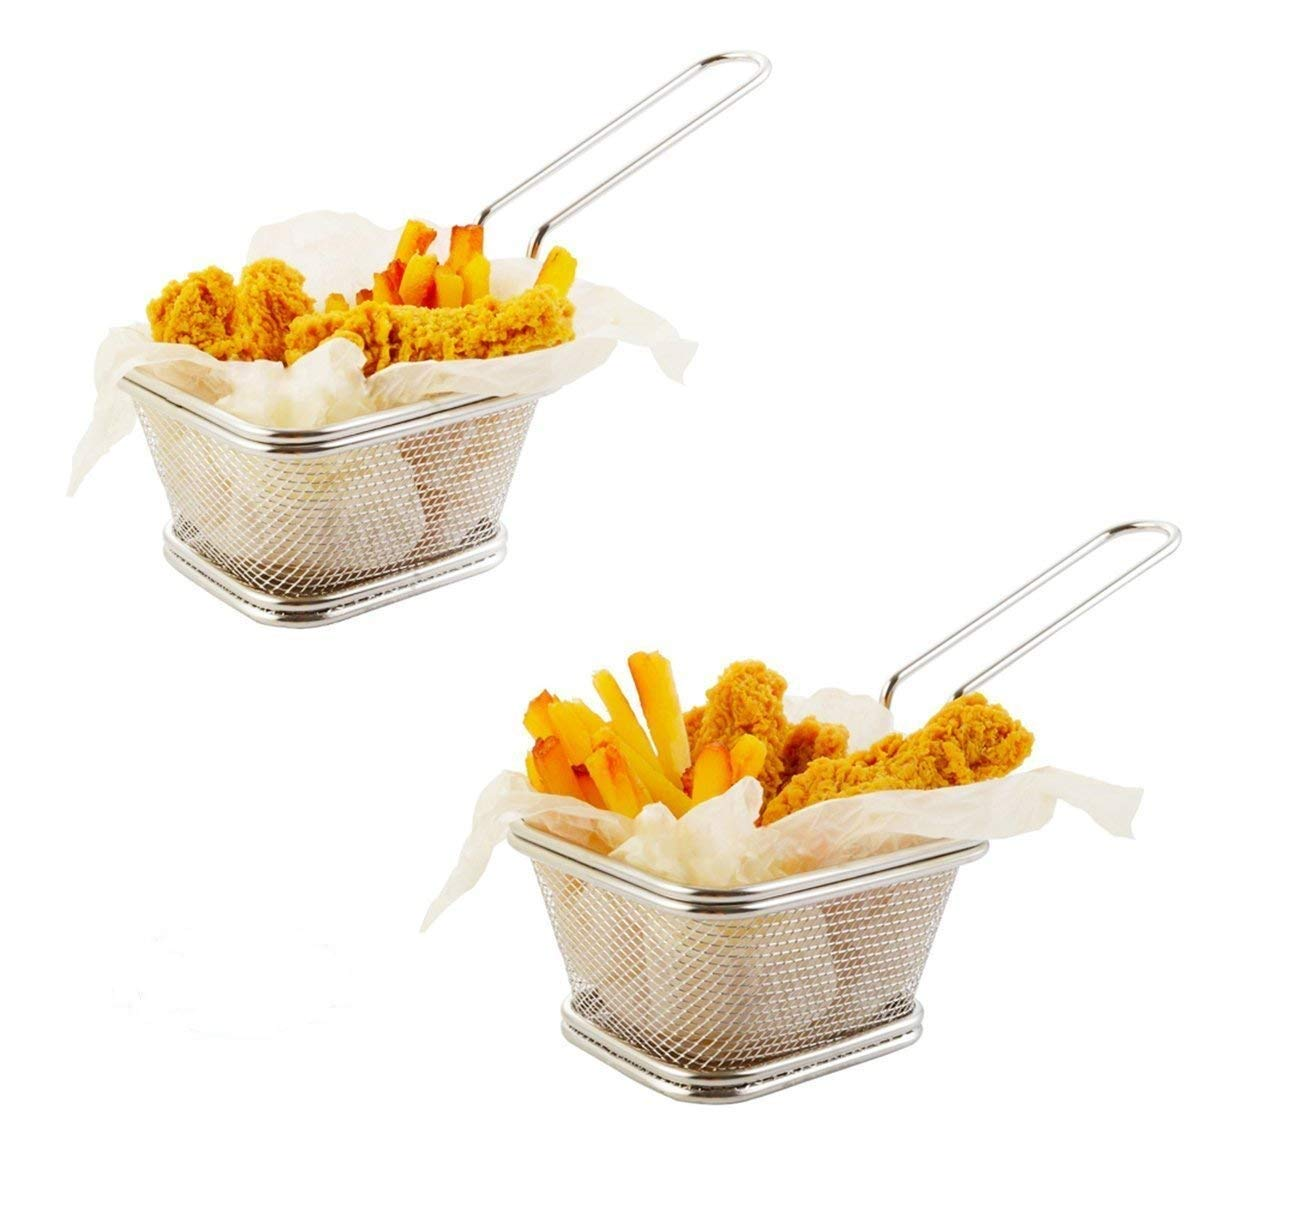 Home Servz Stainless Steel Mini Chips Fry Baskets Fryer Basket,Strainer Serving Food Presentation Cooking Tool,French Fries Basket- 2packs(4 inches)